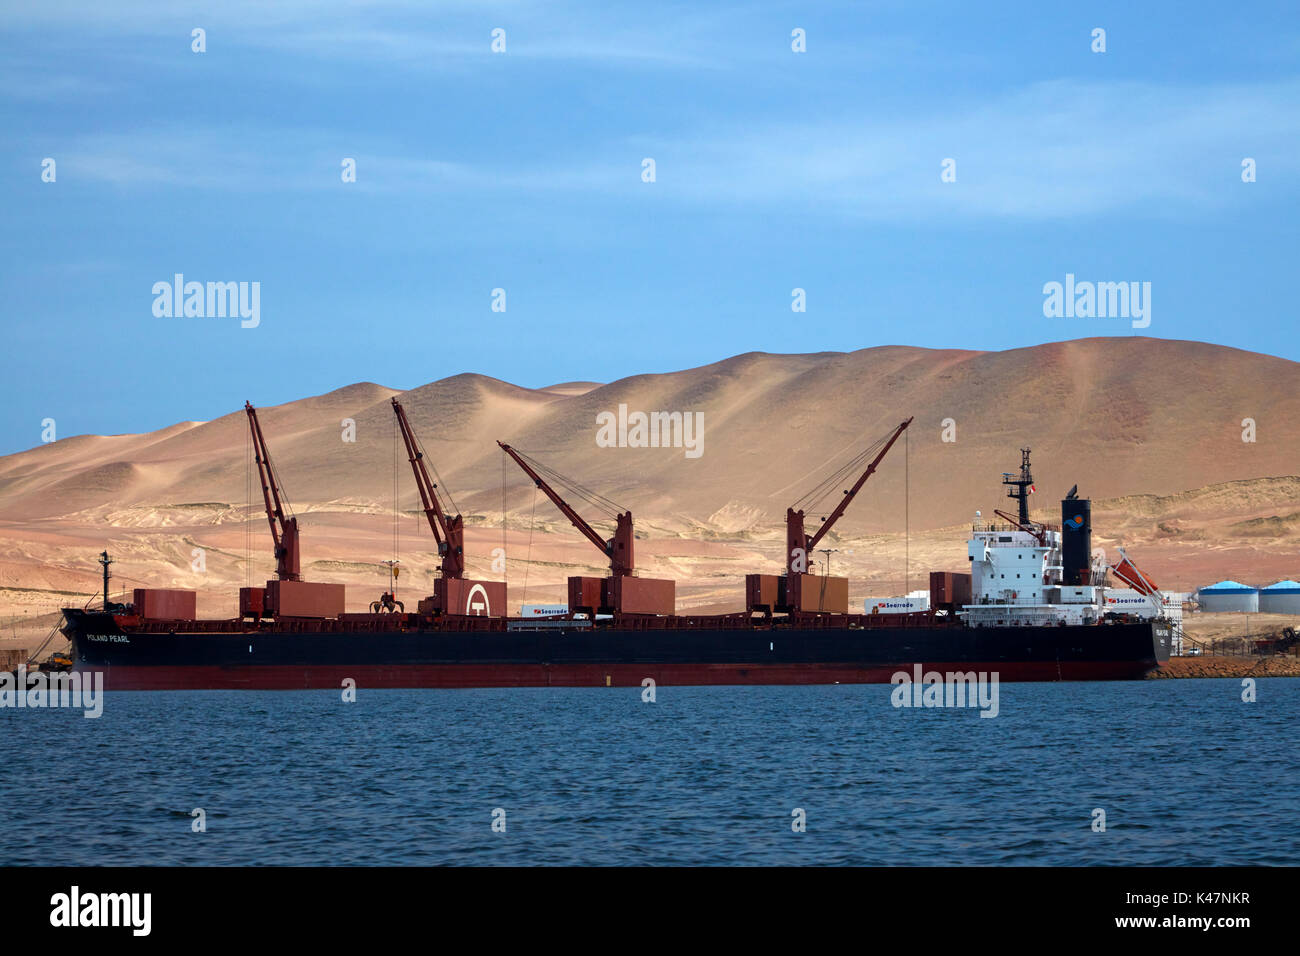 Ship docked at Puerto San Martin, Paracas Peninsula, Paracas National Reserve, Pisco Province, Ica Region, Peru, South America - Stock Image